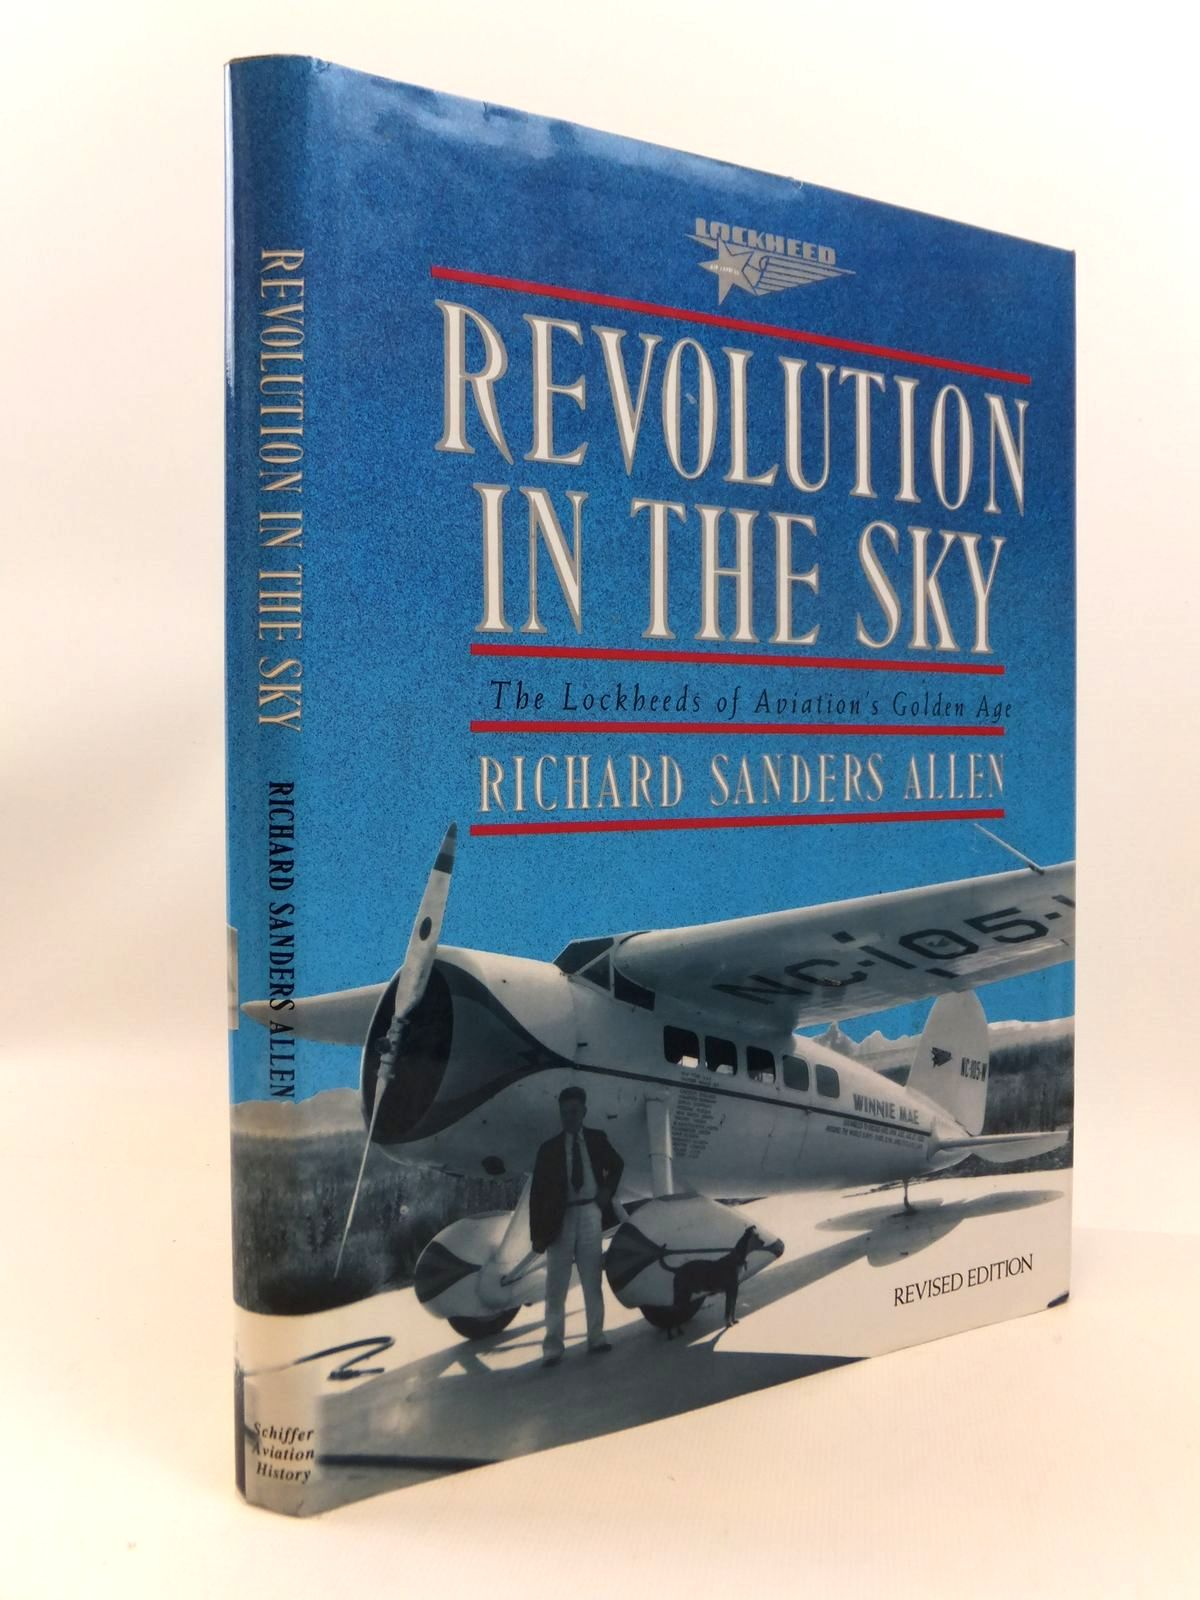 Photo of REVOLUTION IN THE SKY THE LOCKHEEDS OF AVIATION'S GOLDEN AGE written by Allen, Richard Sanders published by Schiffer Aviation History (STOCK CODE: 1812541)  for sale by Stella & Rose's Books